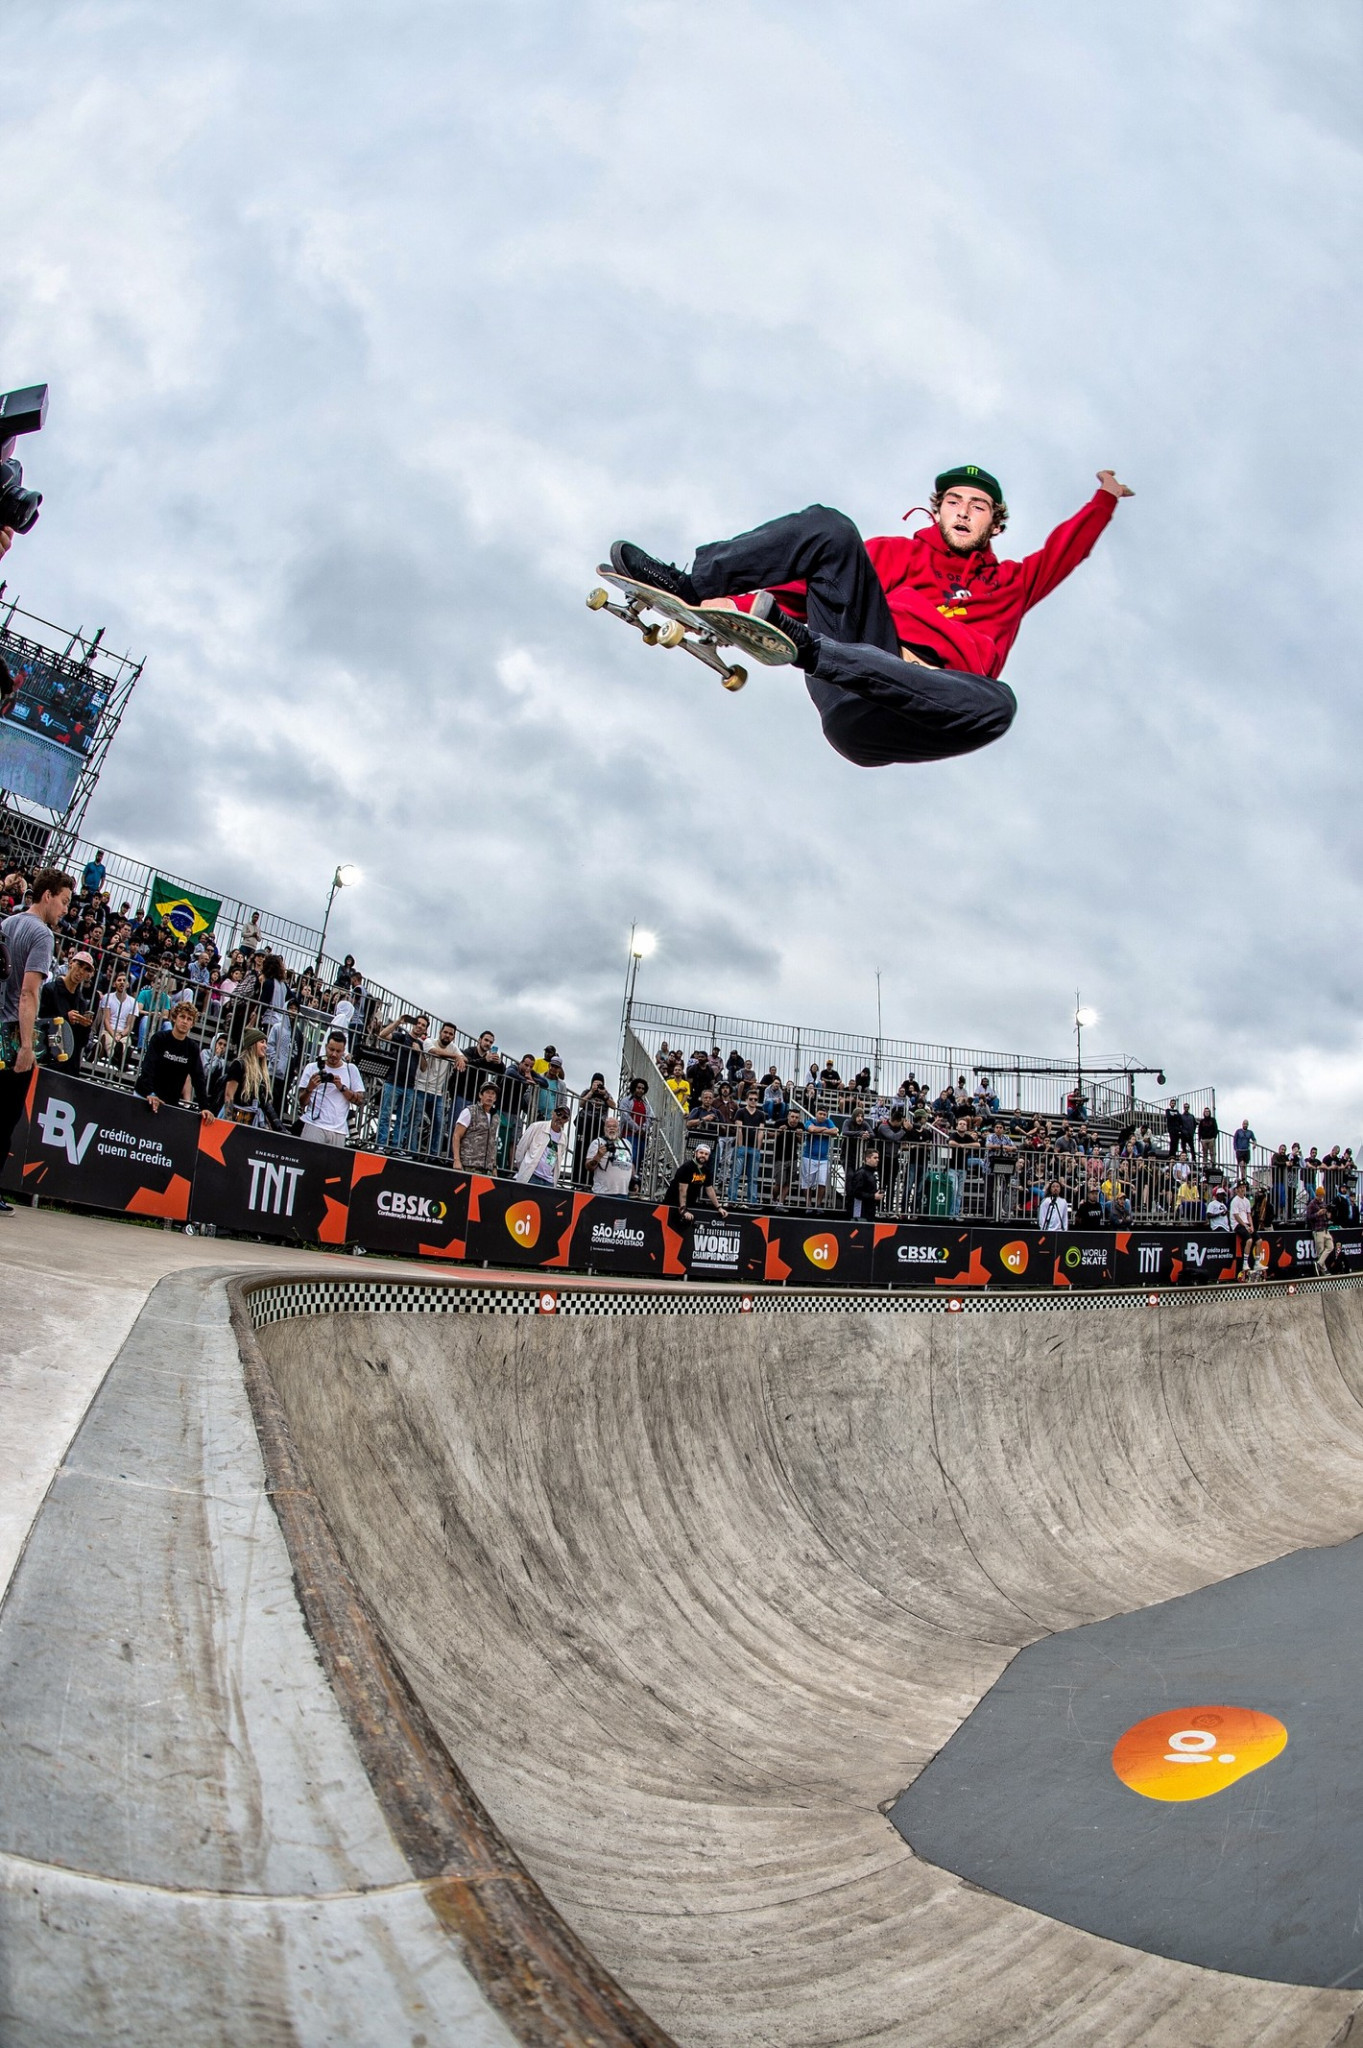 Thomas Schaar of the United States, who had topped open qualifying, took first place in the men's quarter-finals at the World Skate Park World Championship in São Paulo ©World Skate